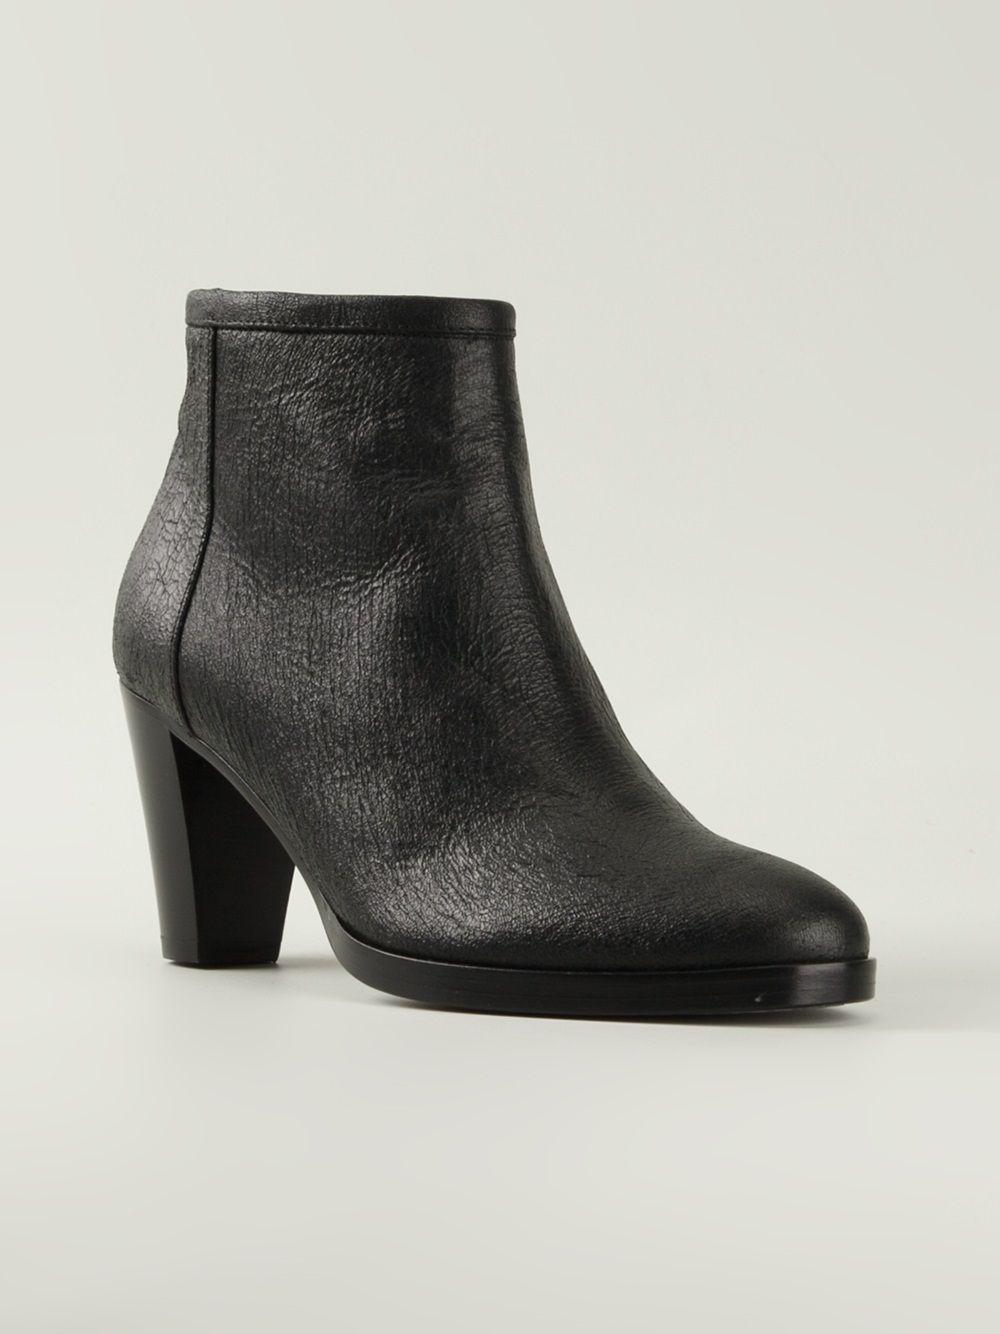 A.F.Vandevorst Leather '161x3766' Boots in Black